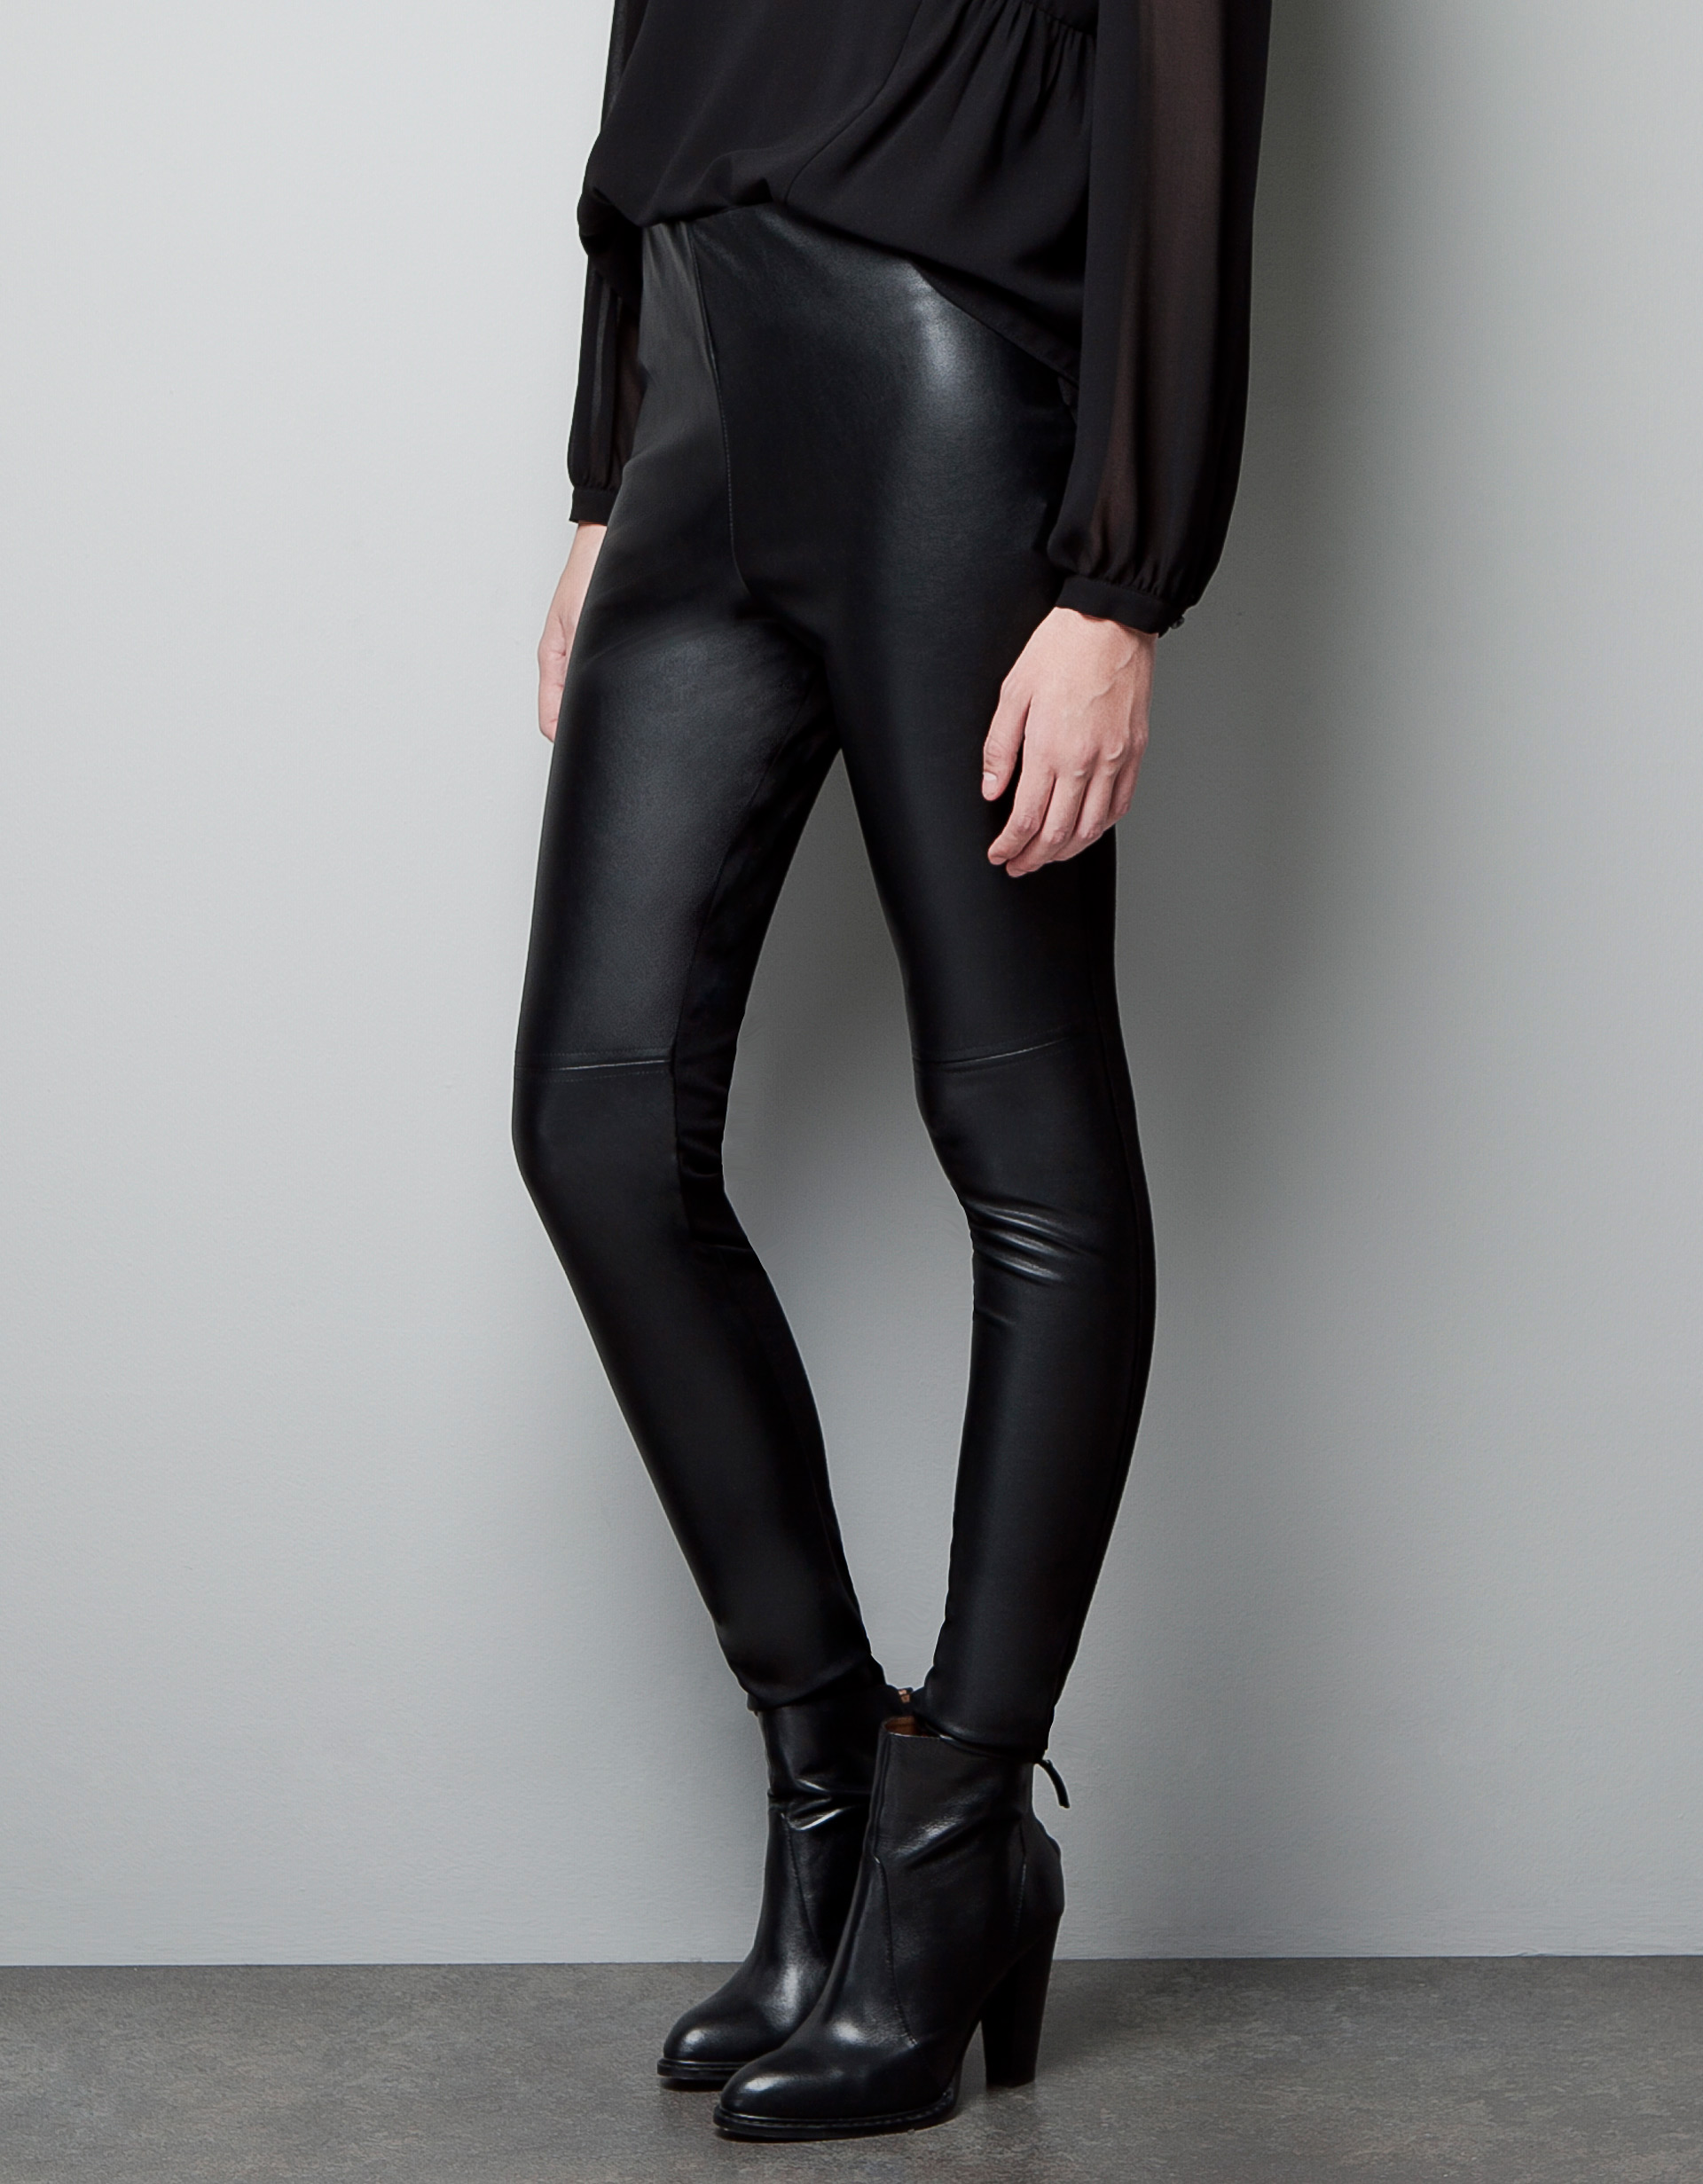 Zara Faux Leather Leggings